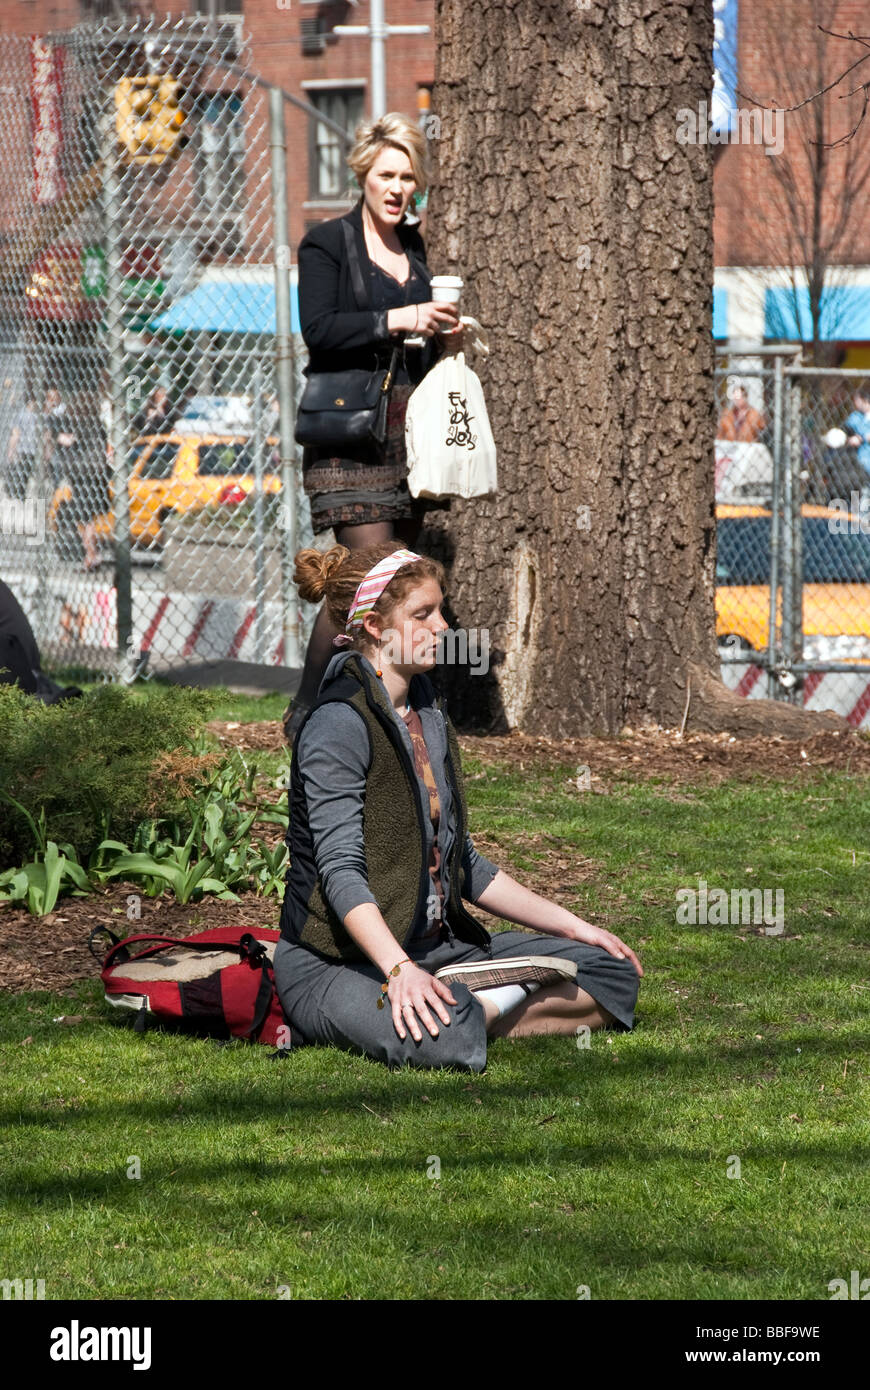 a young red haired woman with rosy cheeks & freckles sits cross-legged meditating in Union Square Park, New - Stock Image